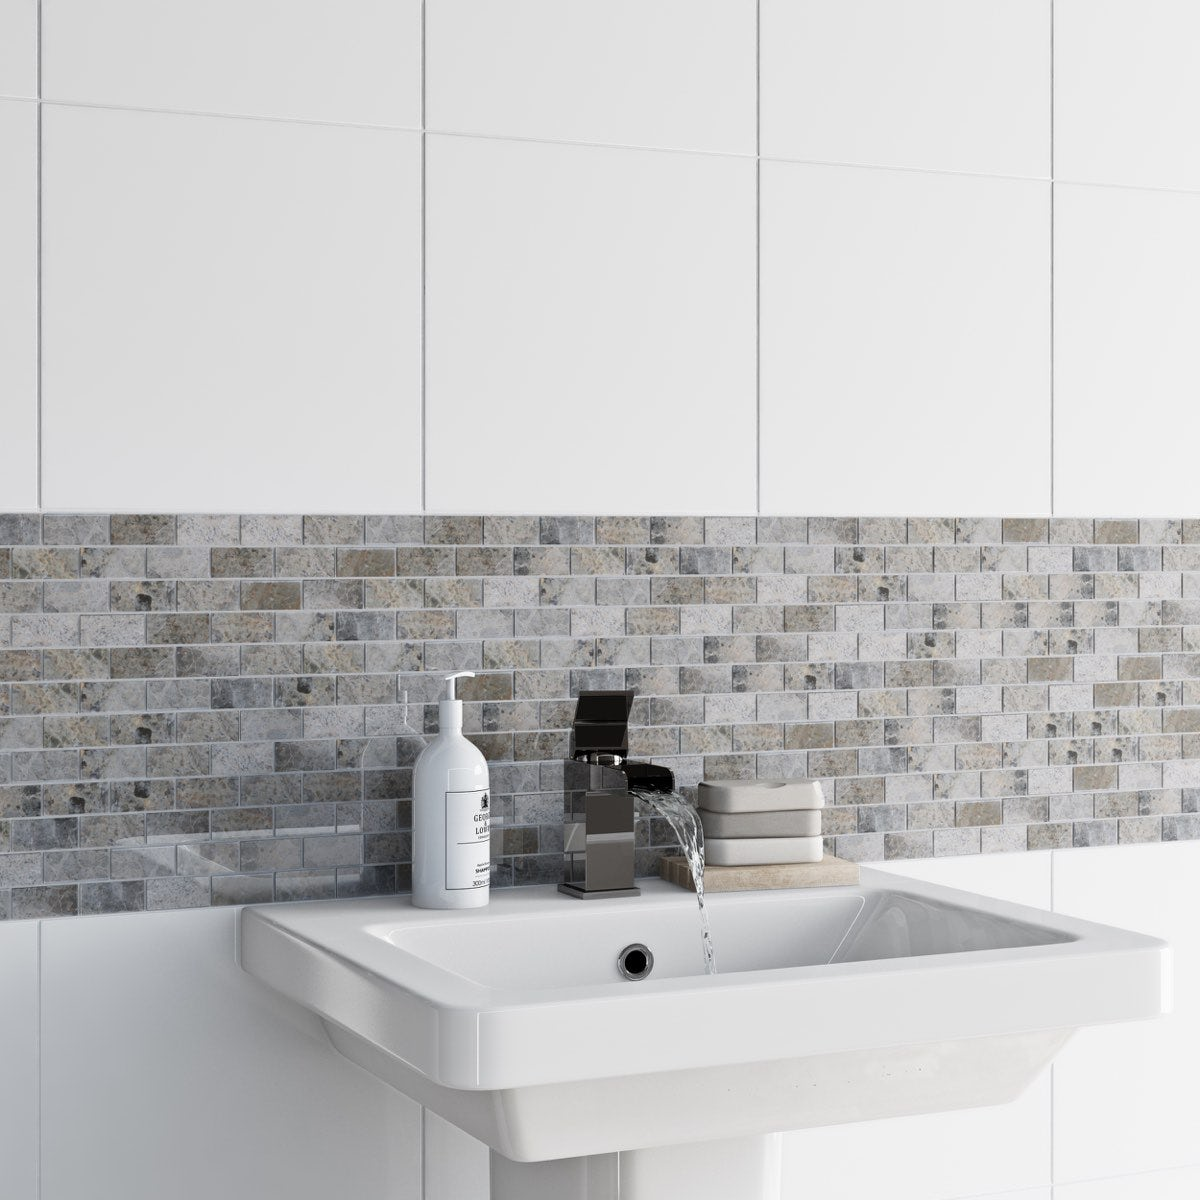 Bathroom Wall Tiles, cheap bathroom wall titles | VictoriaPlum.com